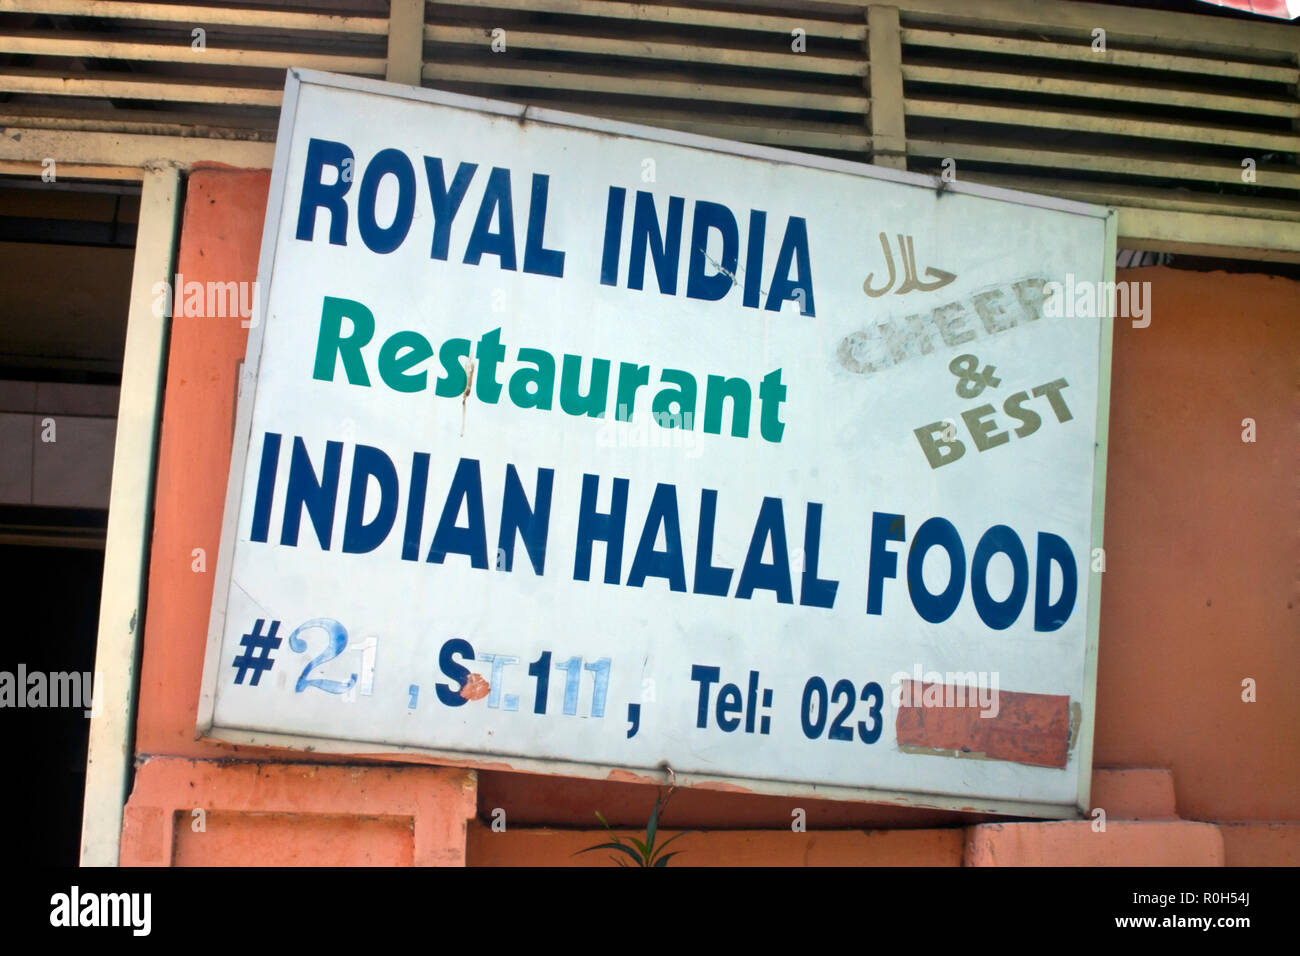 Restaurant With Halal Food High Resolution Stock Photography And Images Alamy